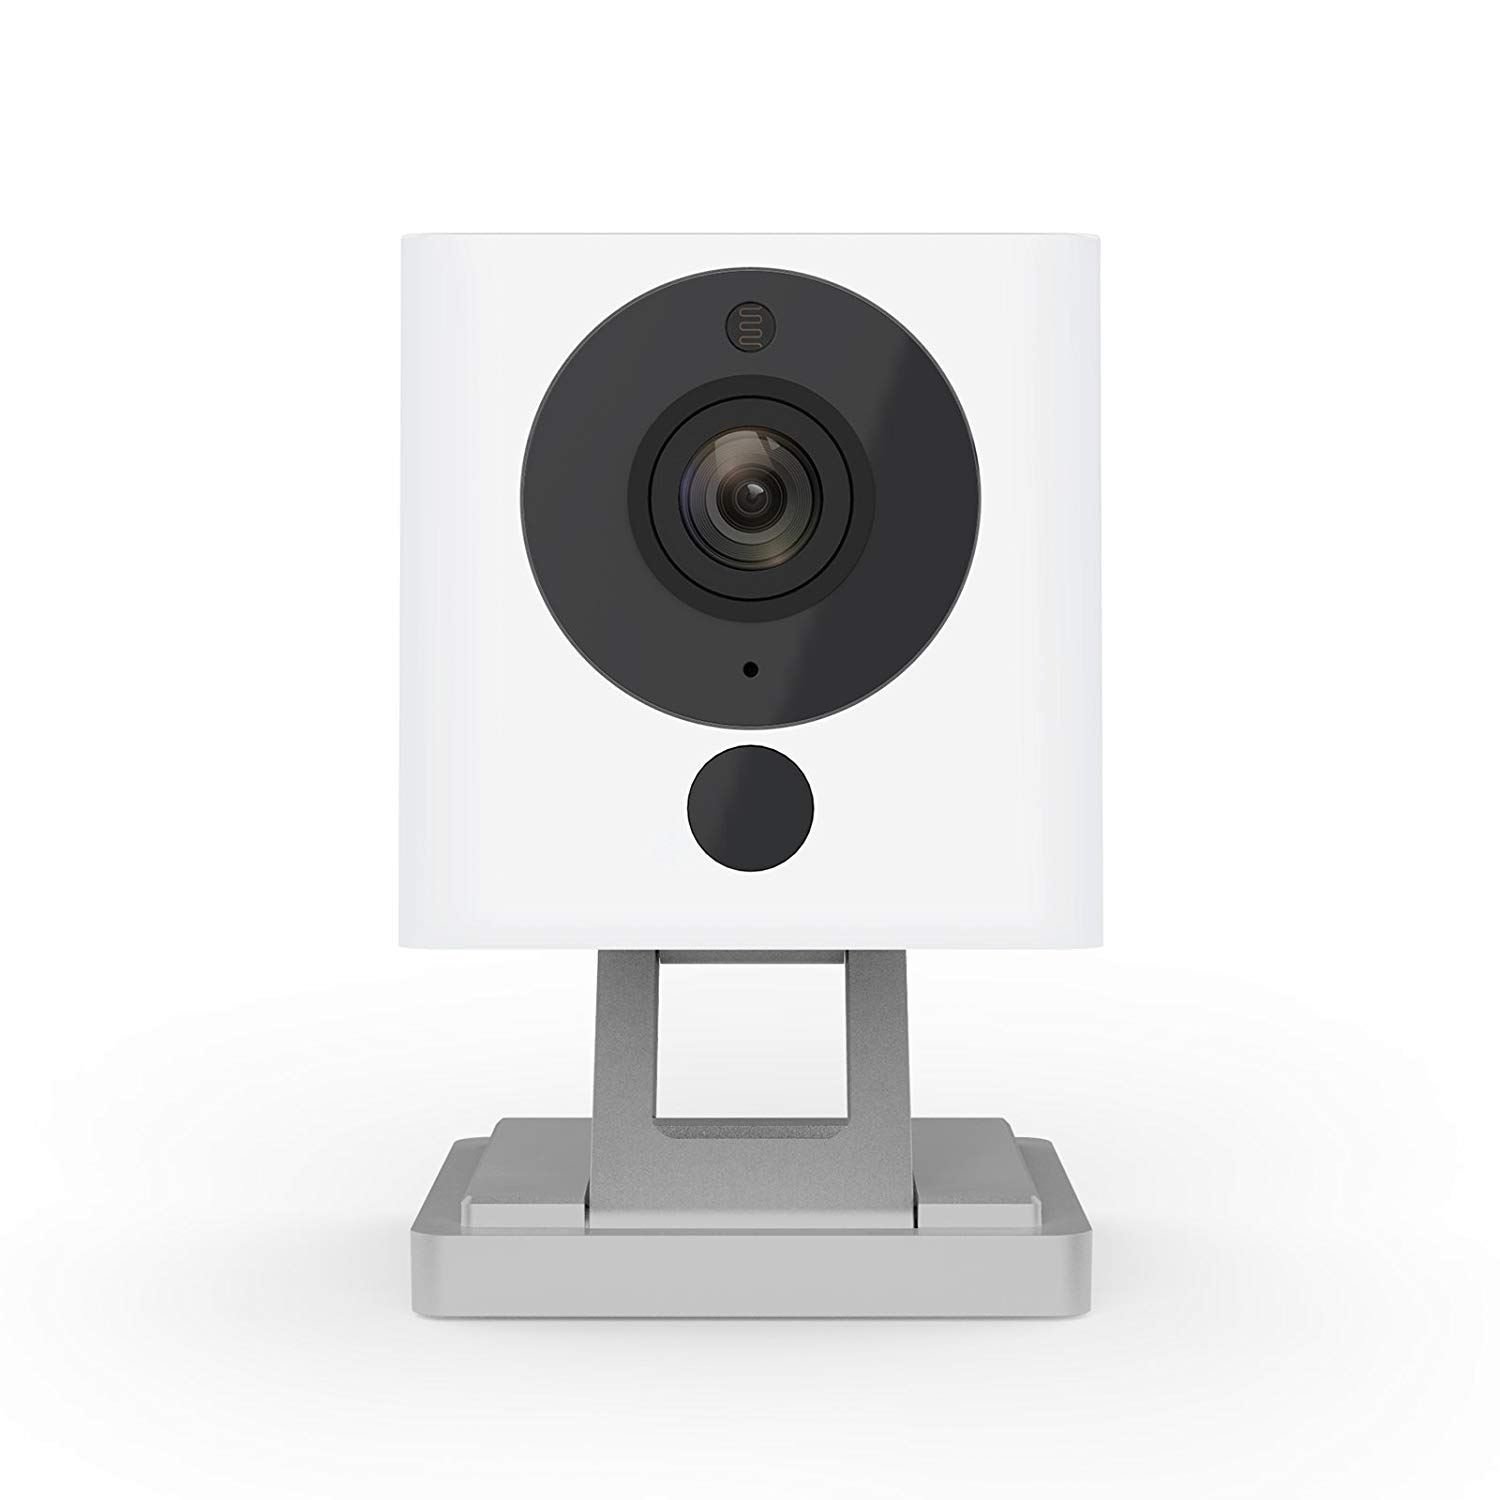 can i use wyze cam firmware on dafang camera